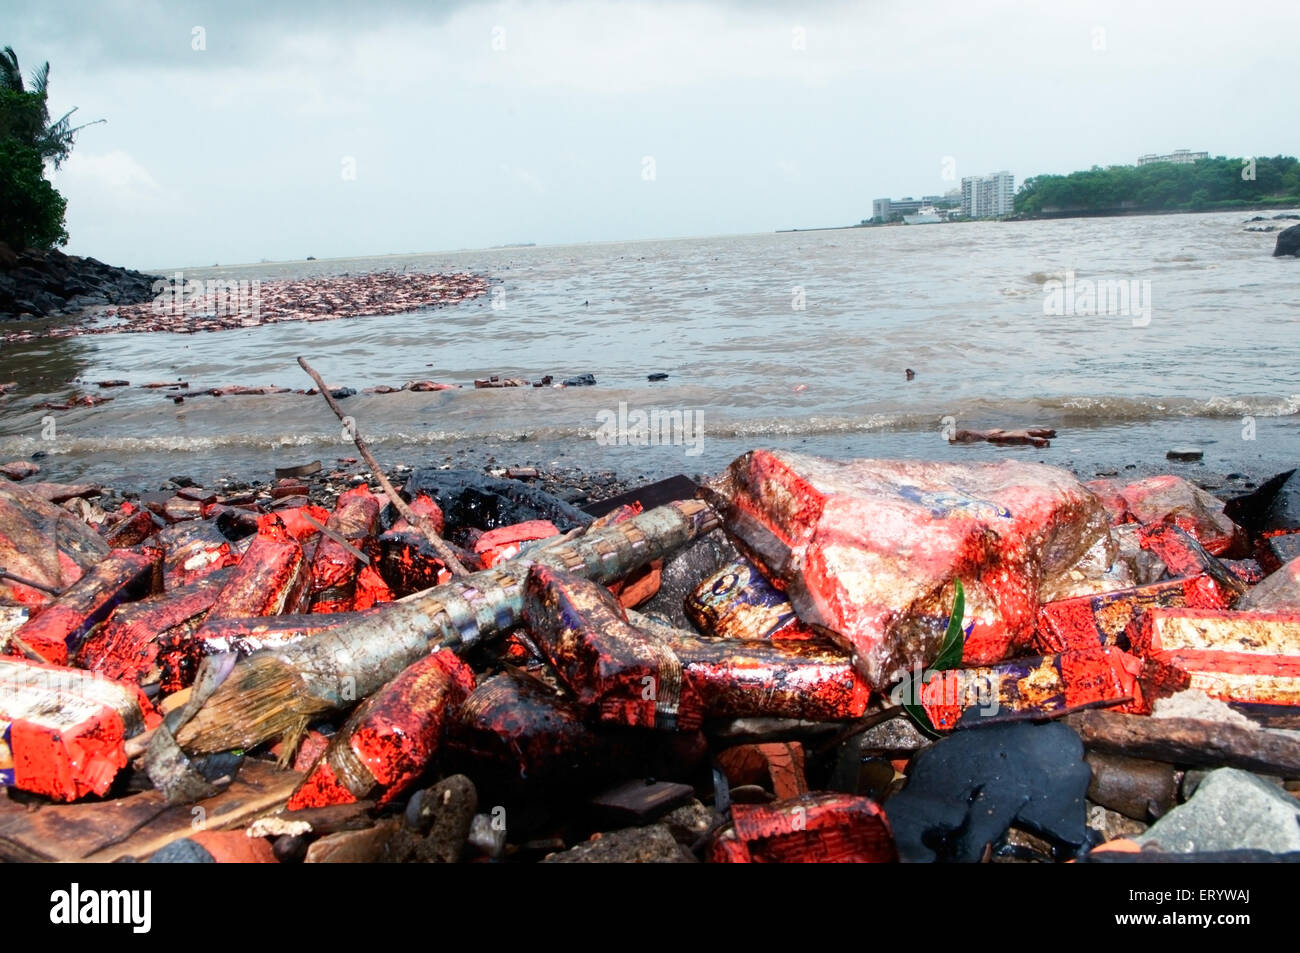 Oil soaked biscuit packets floating due to container ship chitra colliding in sea Bombay Mumbai ; Maharashtra - Stock Image